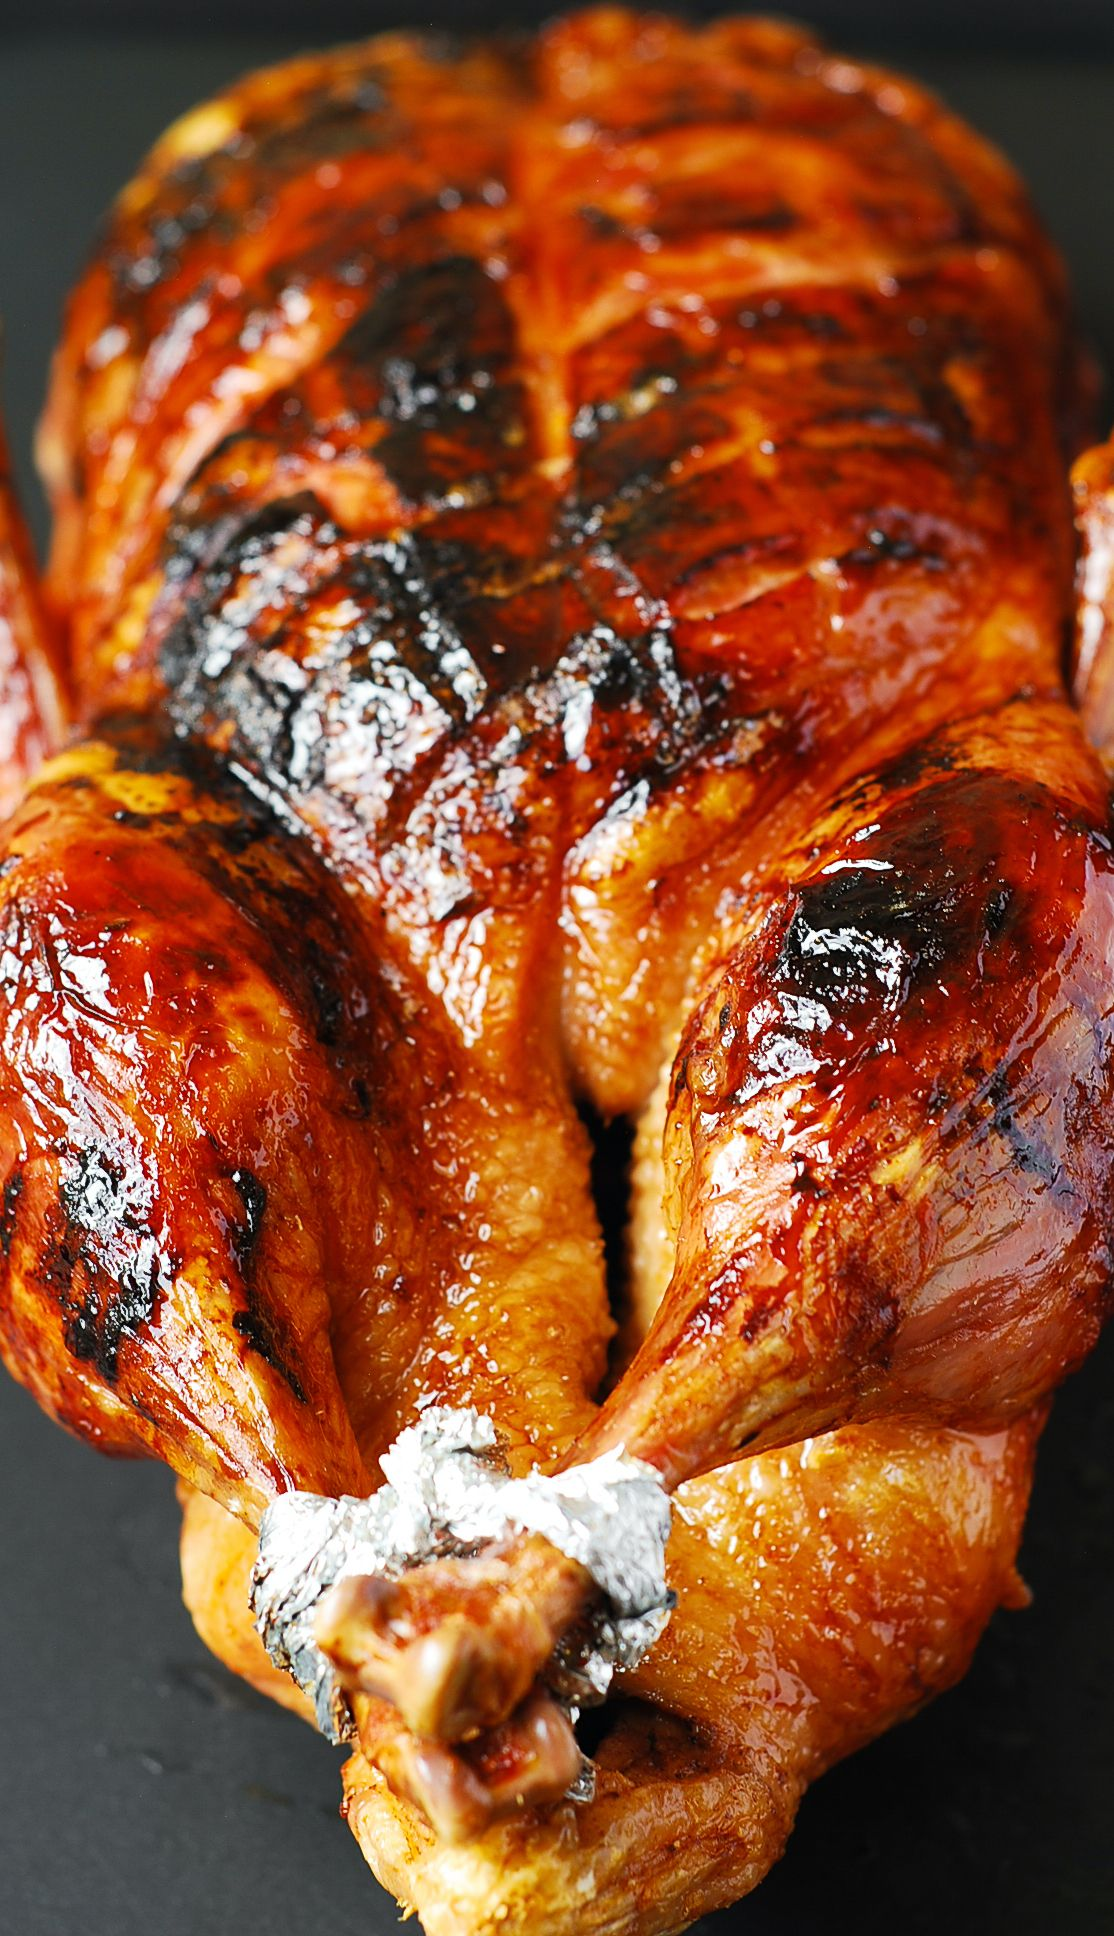 How to roast a whole duck - step-by-step photos